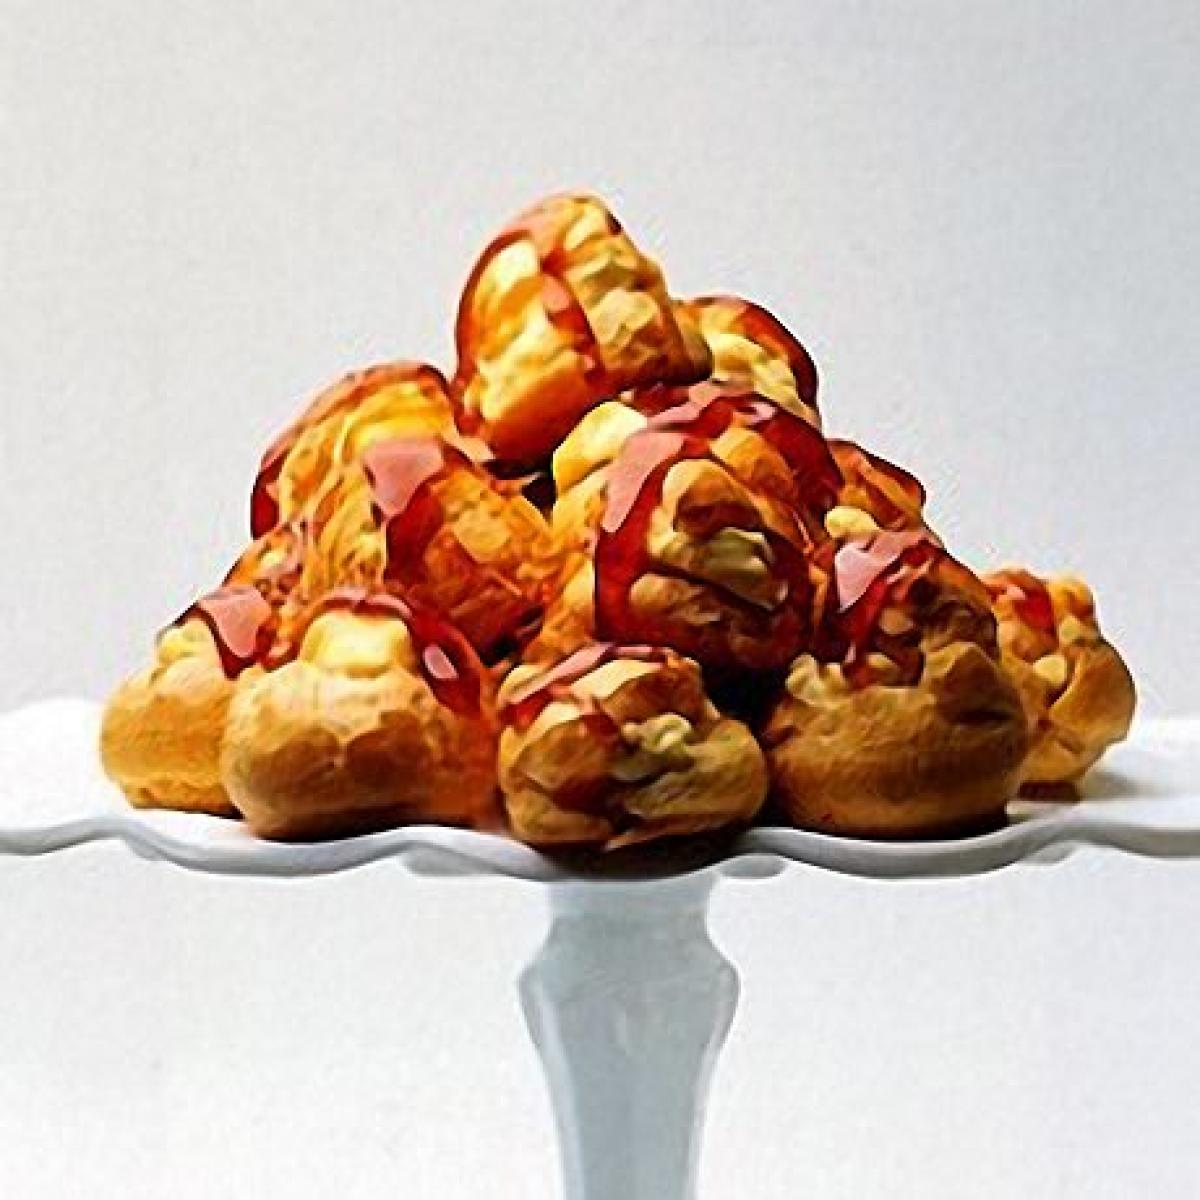 A picture of Delia's Croquembouche recipe